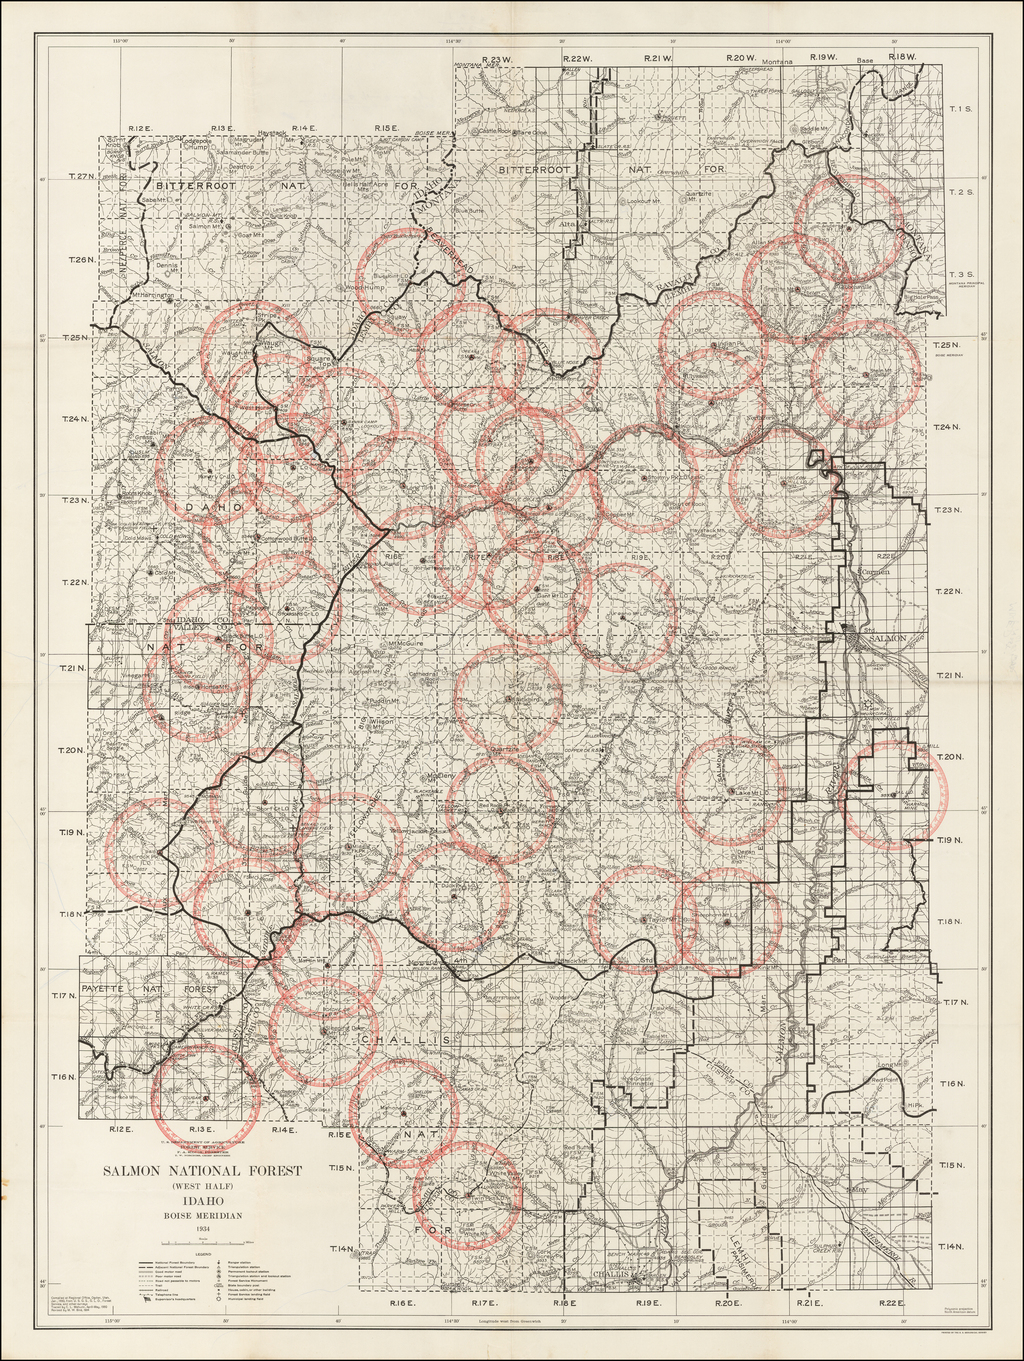 Salmon National Forest (West Half) Idaho . . . 1934 By U.S. Department of Agriculture